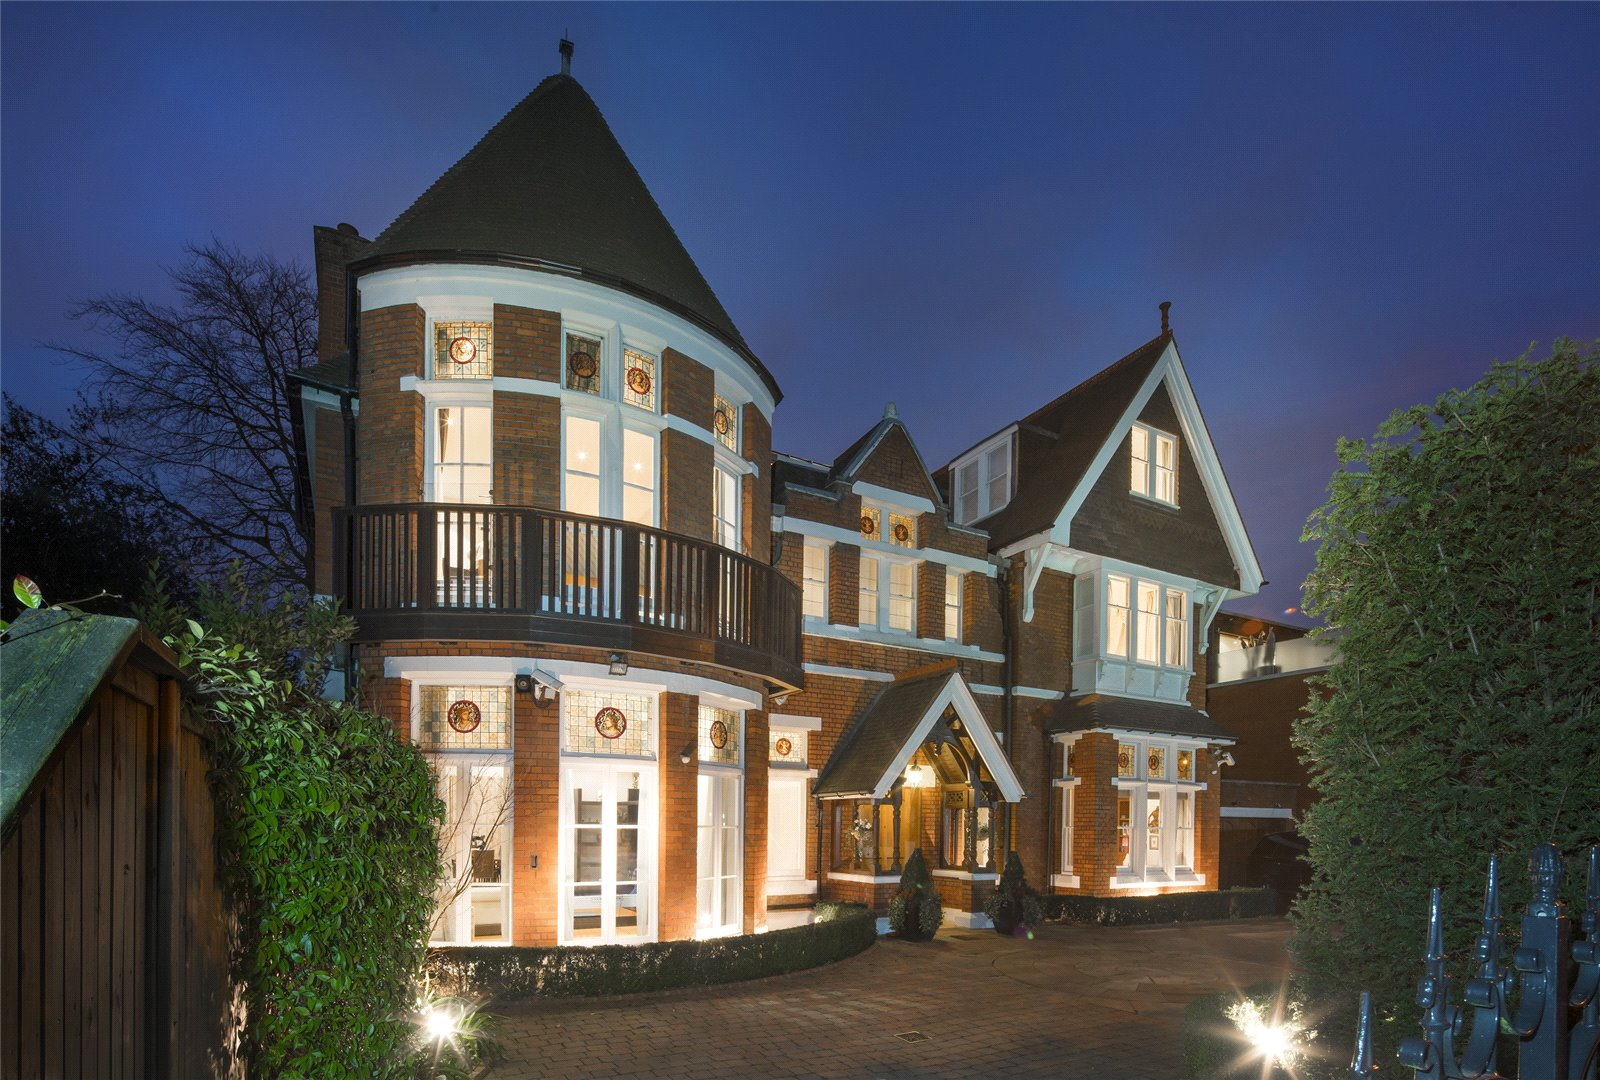 House for Rent at Elm Walk, Hampstead, London, NW3 Elm Walk, Hampstead, London, NW3